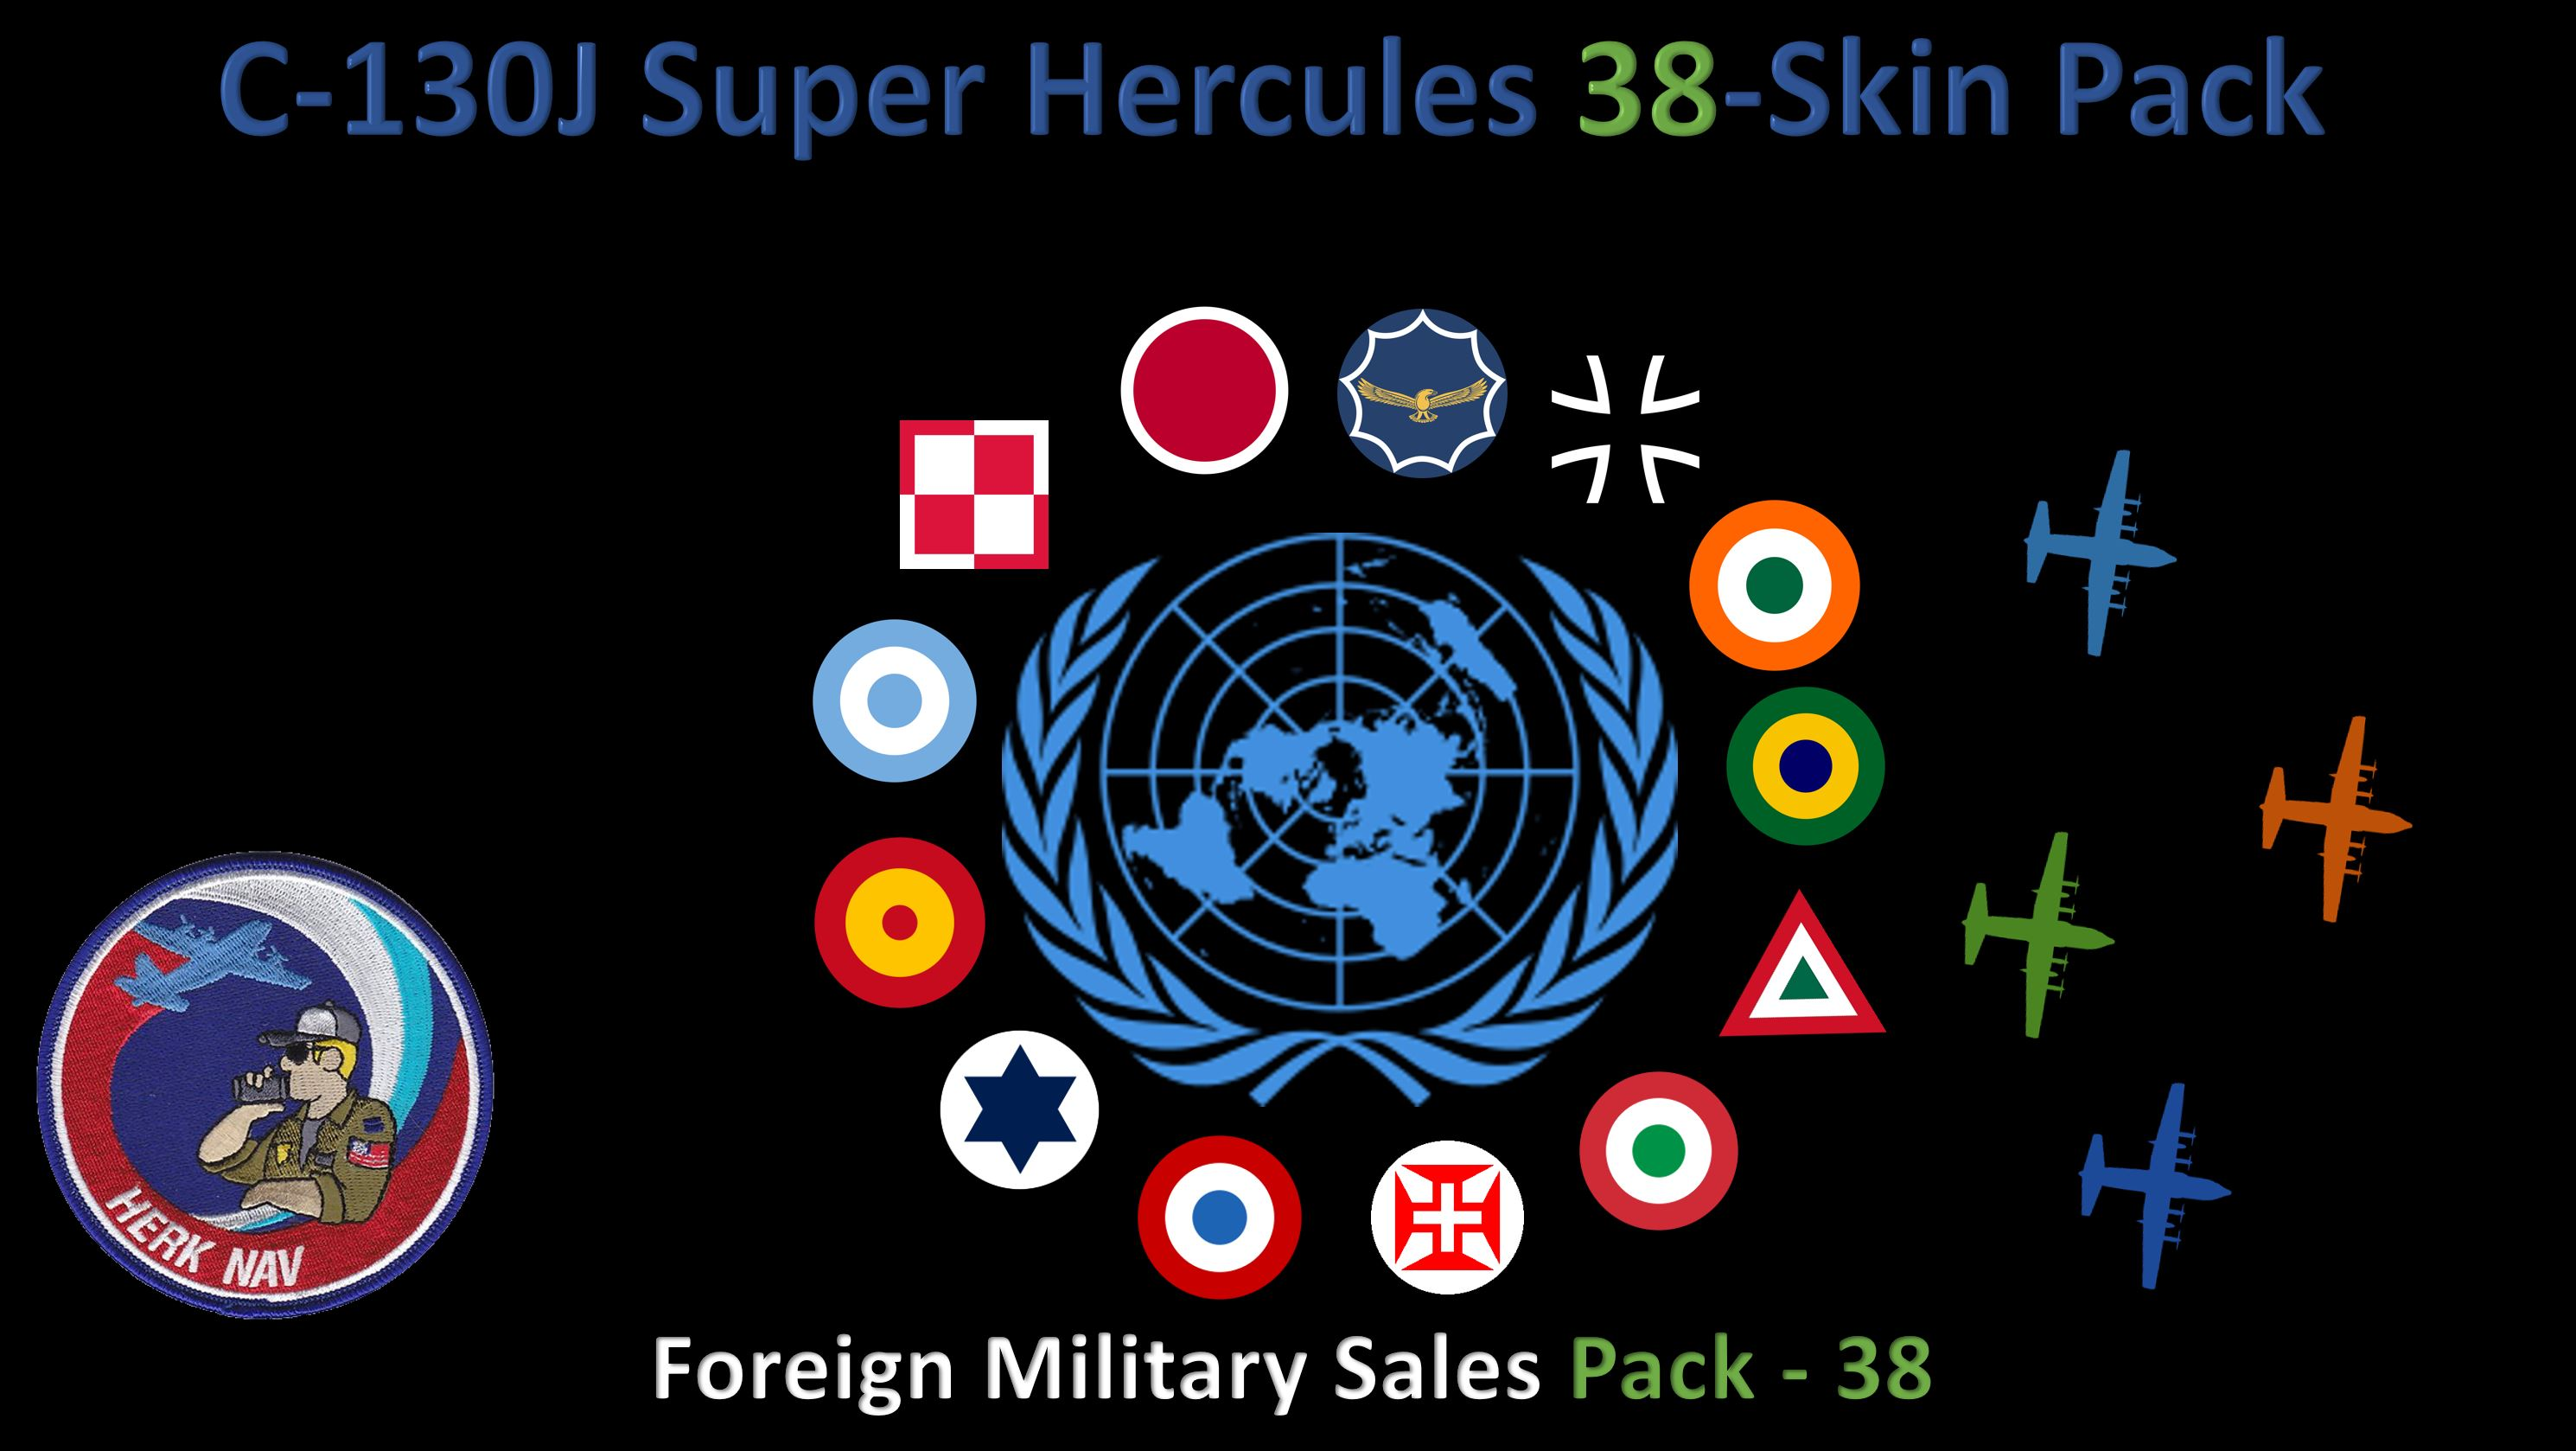 ***NEW 29JAN21***  C-130J Super Hercules 38-Skin FMS Pack V2.8.2